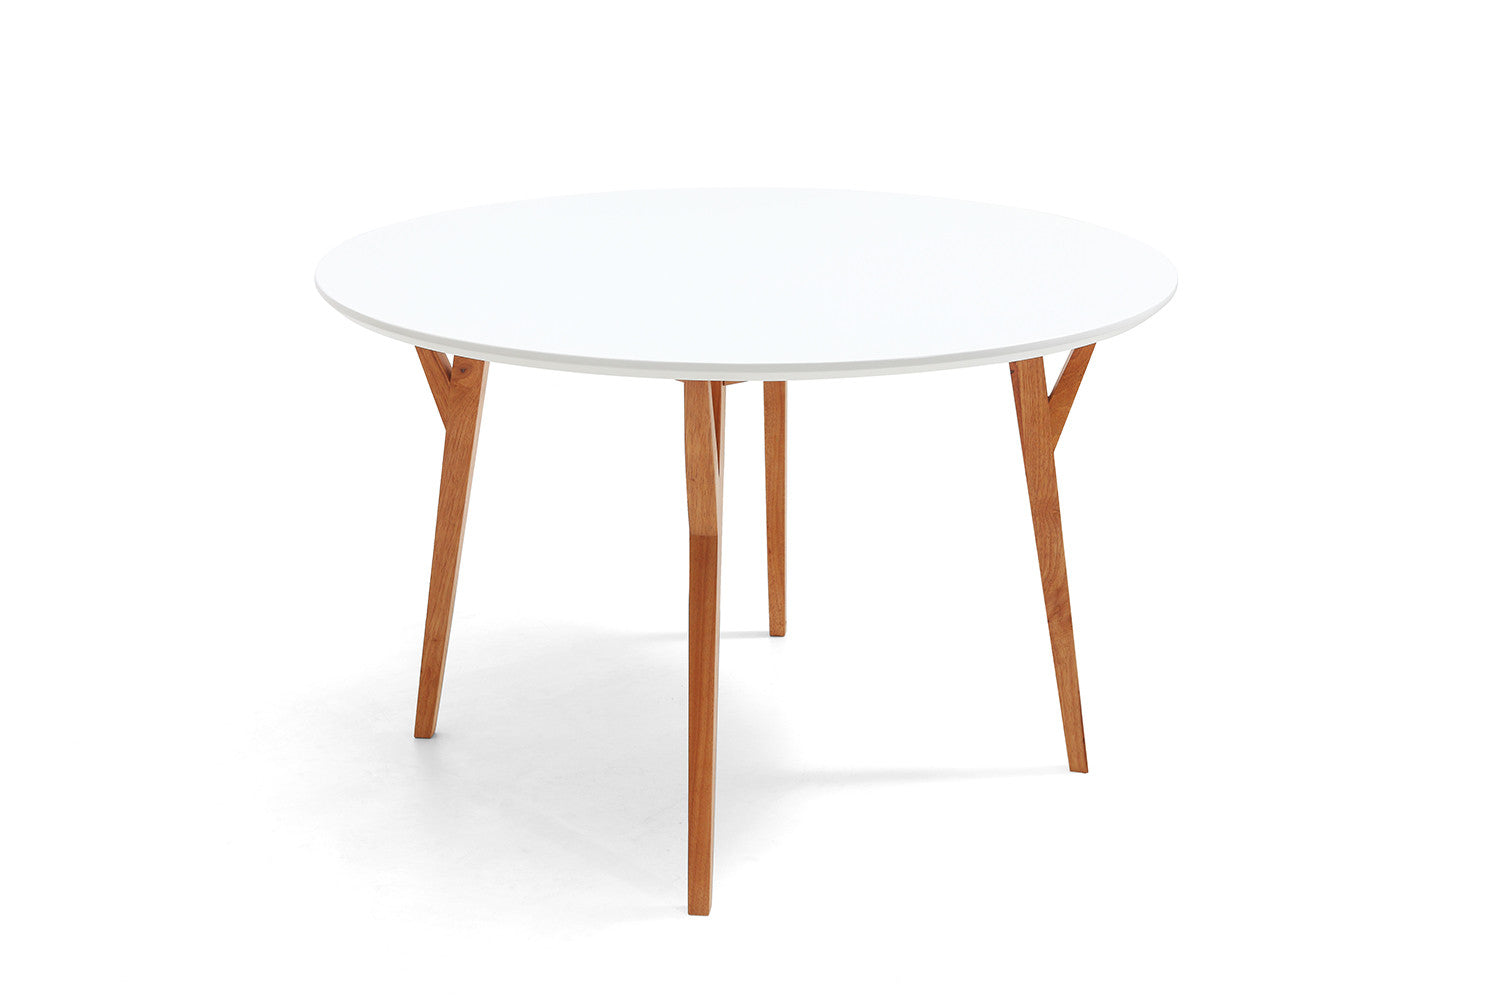 Table de salle manger ronde design scandinave moesa for Table a manger blanche design